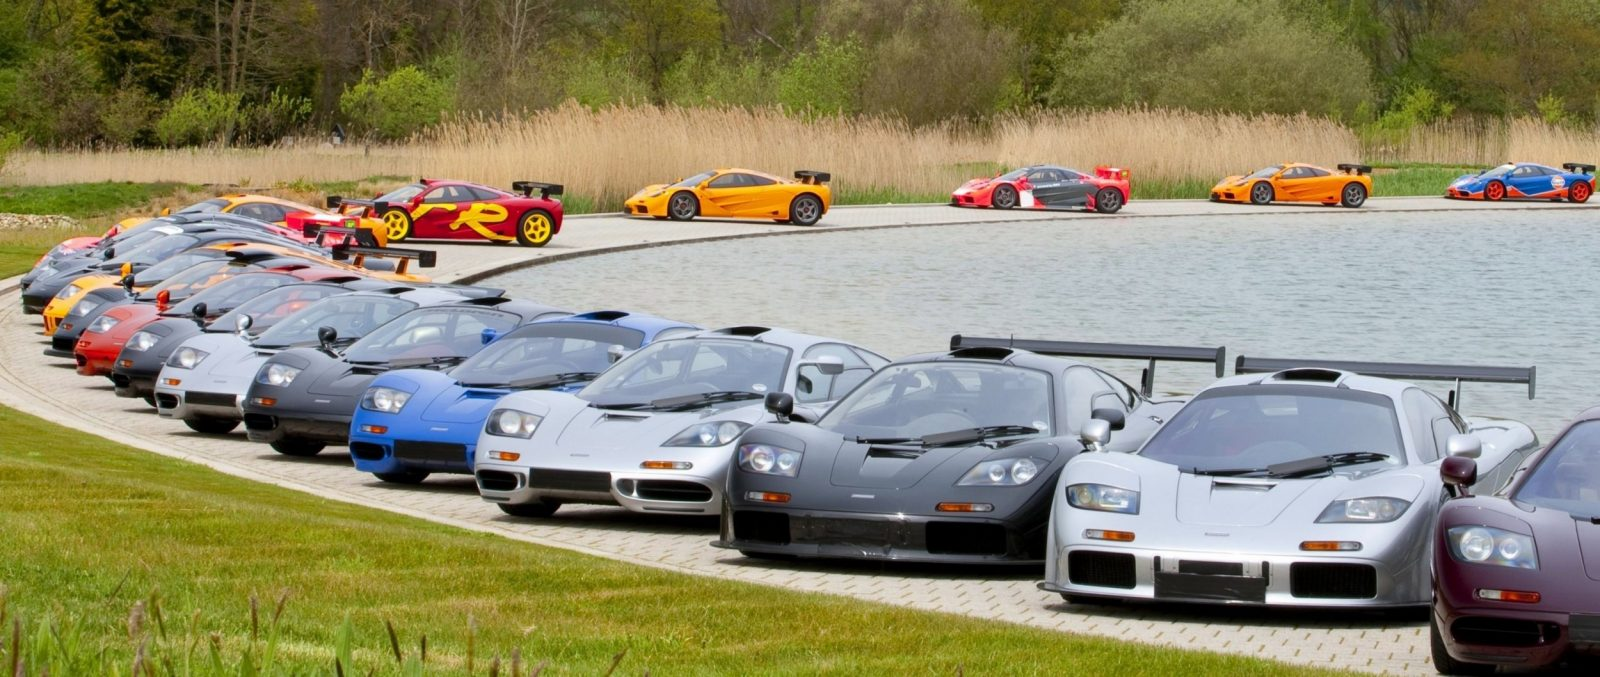 CarRevsDaily - Supercar Legends - McLaren F1 Wallpaper 12